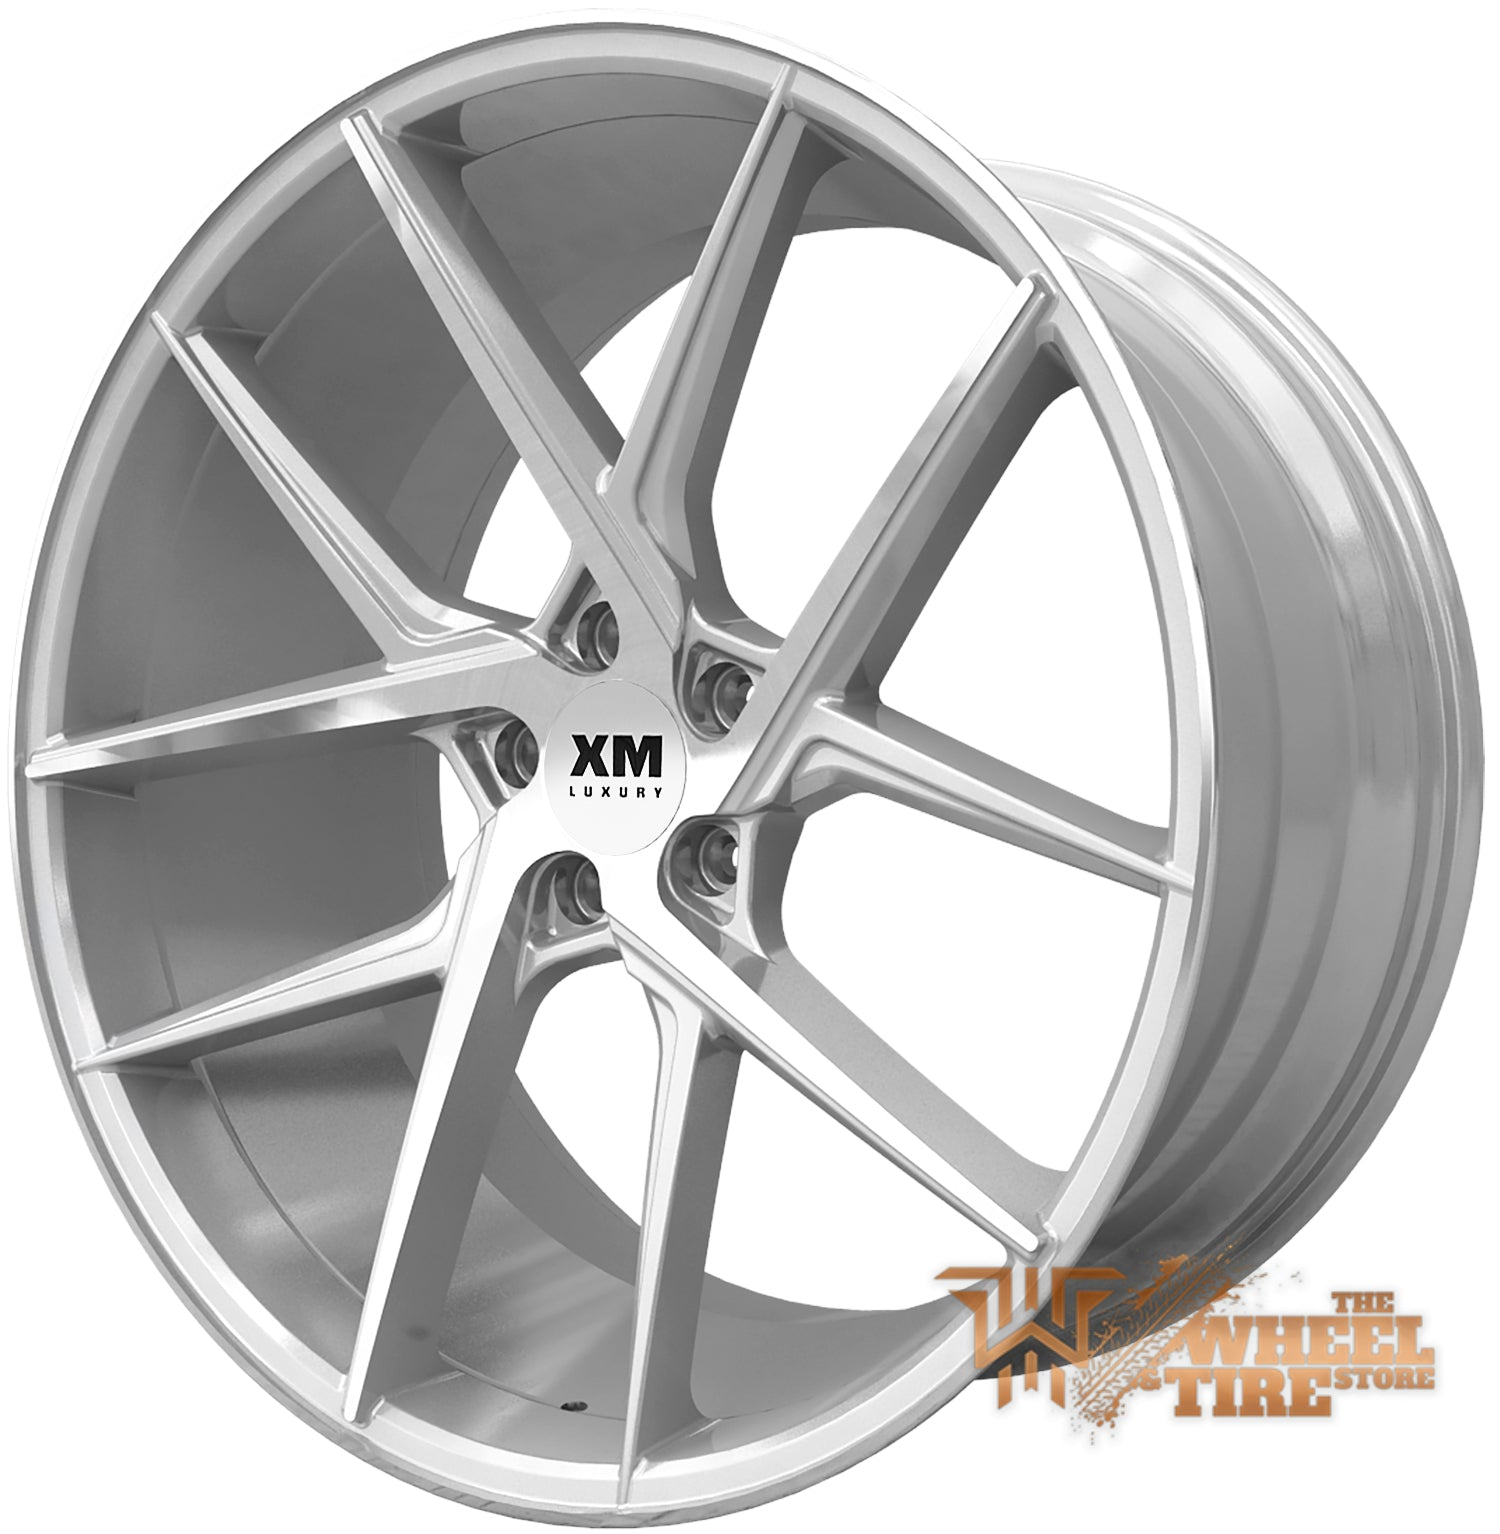 XM LUXURY XM-204 Wheel in Silver Machined (Set of 4)